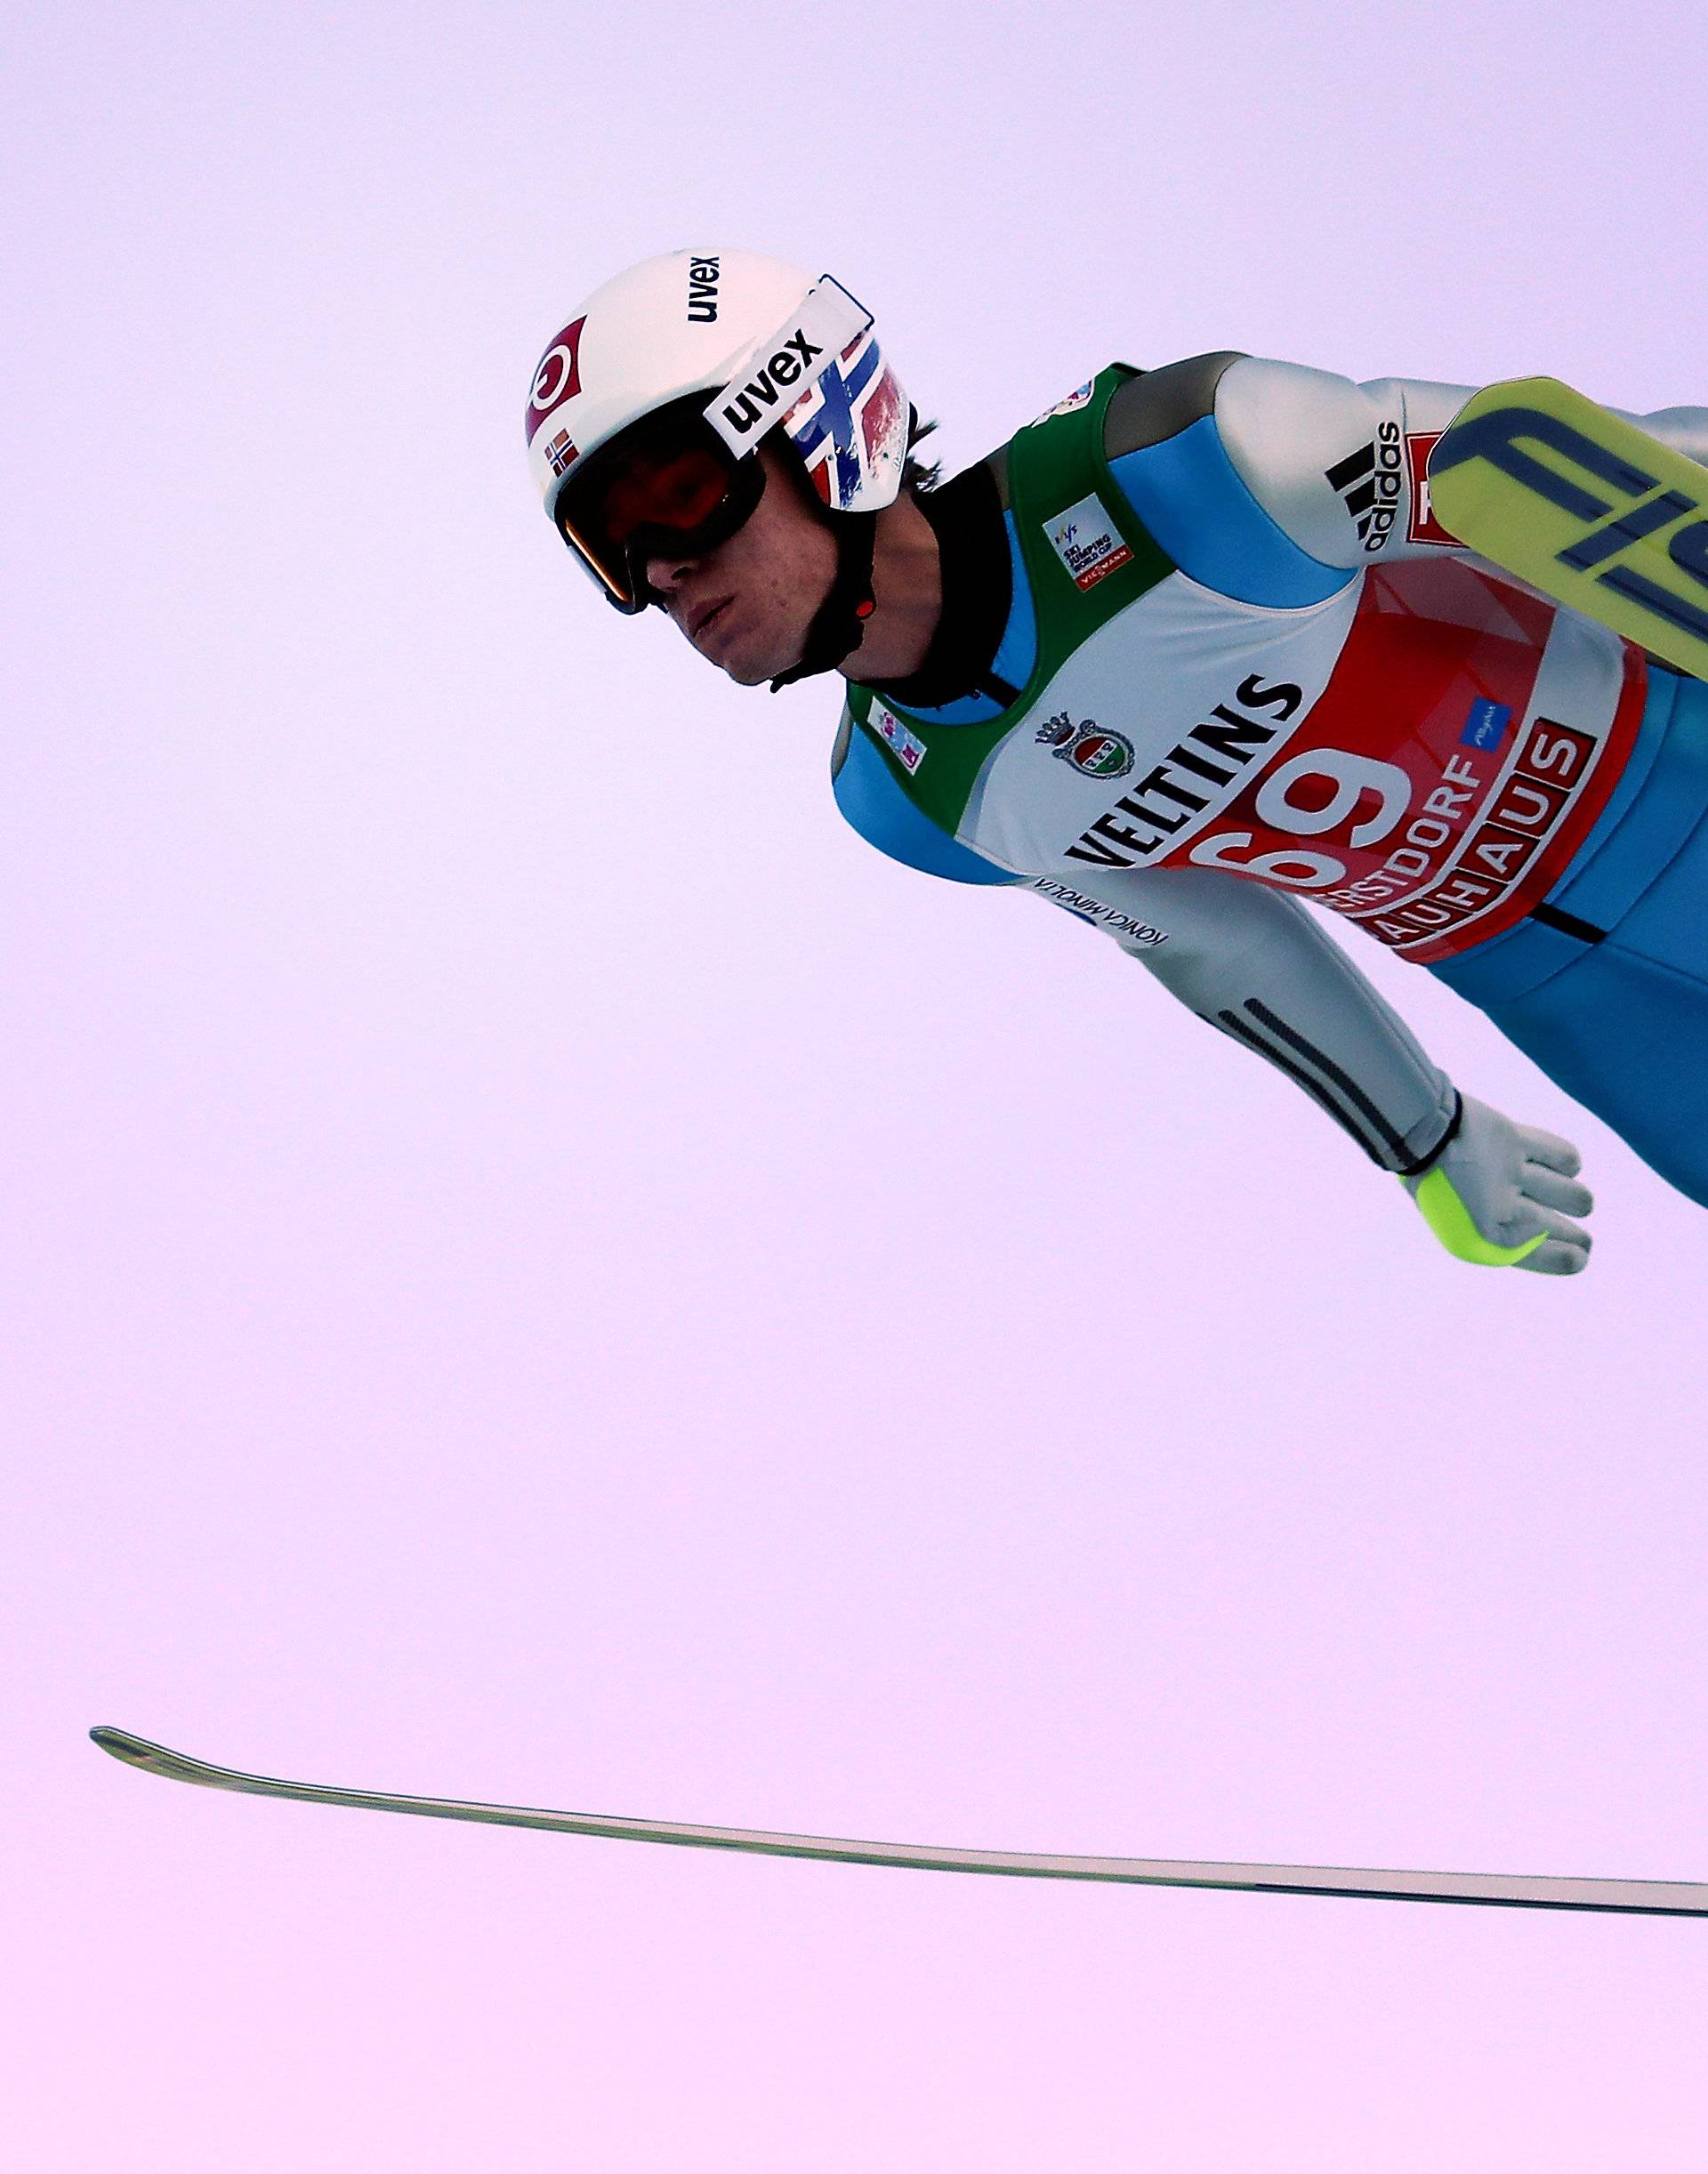 Ski Jumping - 65th four hills tournament trial round